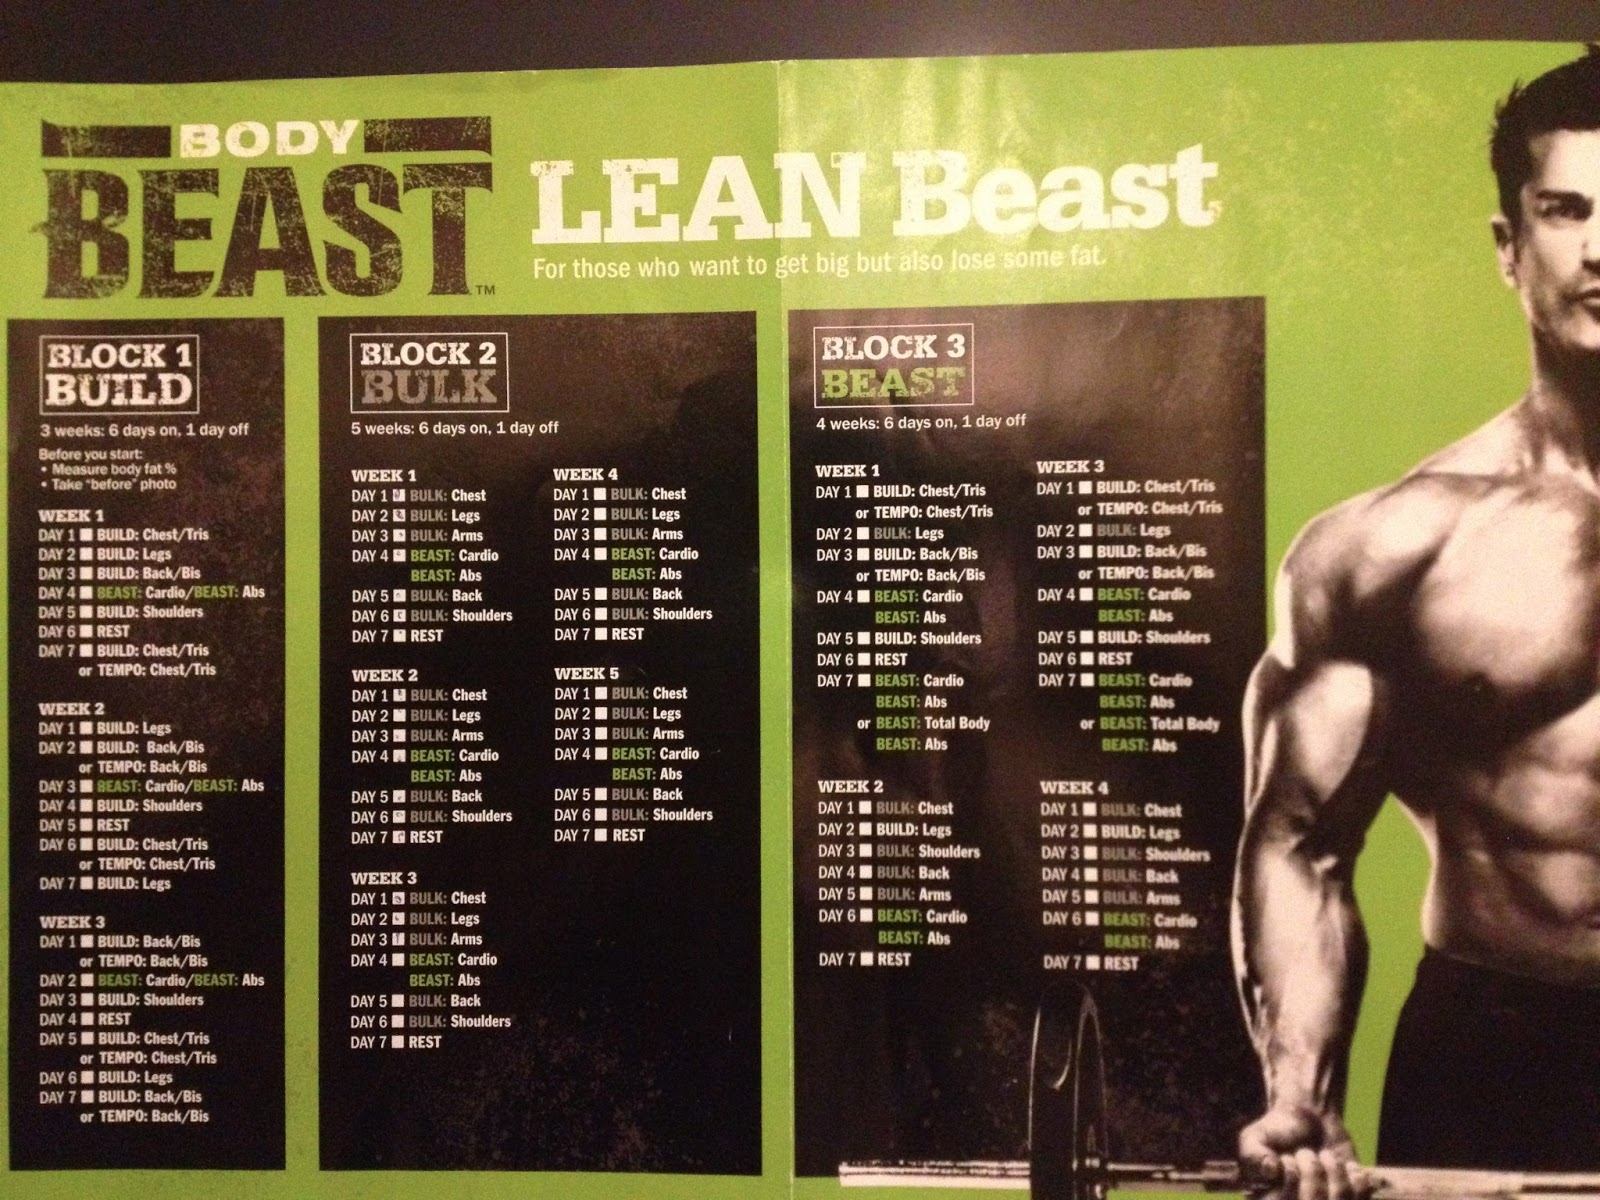 Week 1 Body Beastt25 Hybrid And Meal Plan | Melanie Mitro regarding Body Beast Hybrid